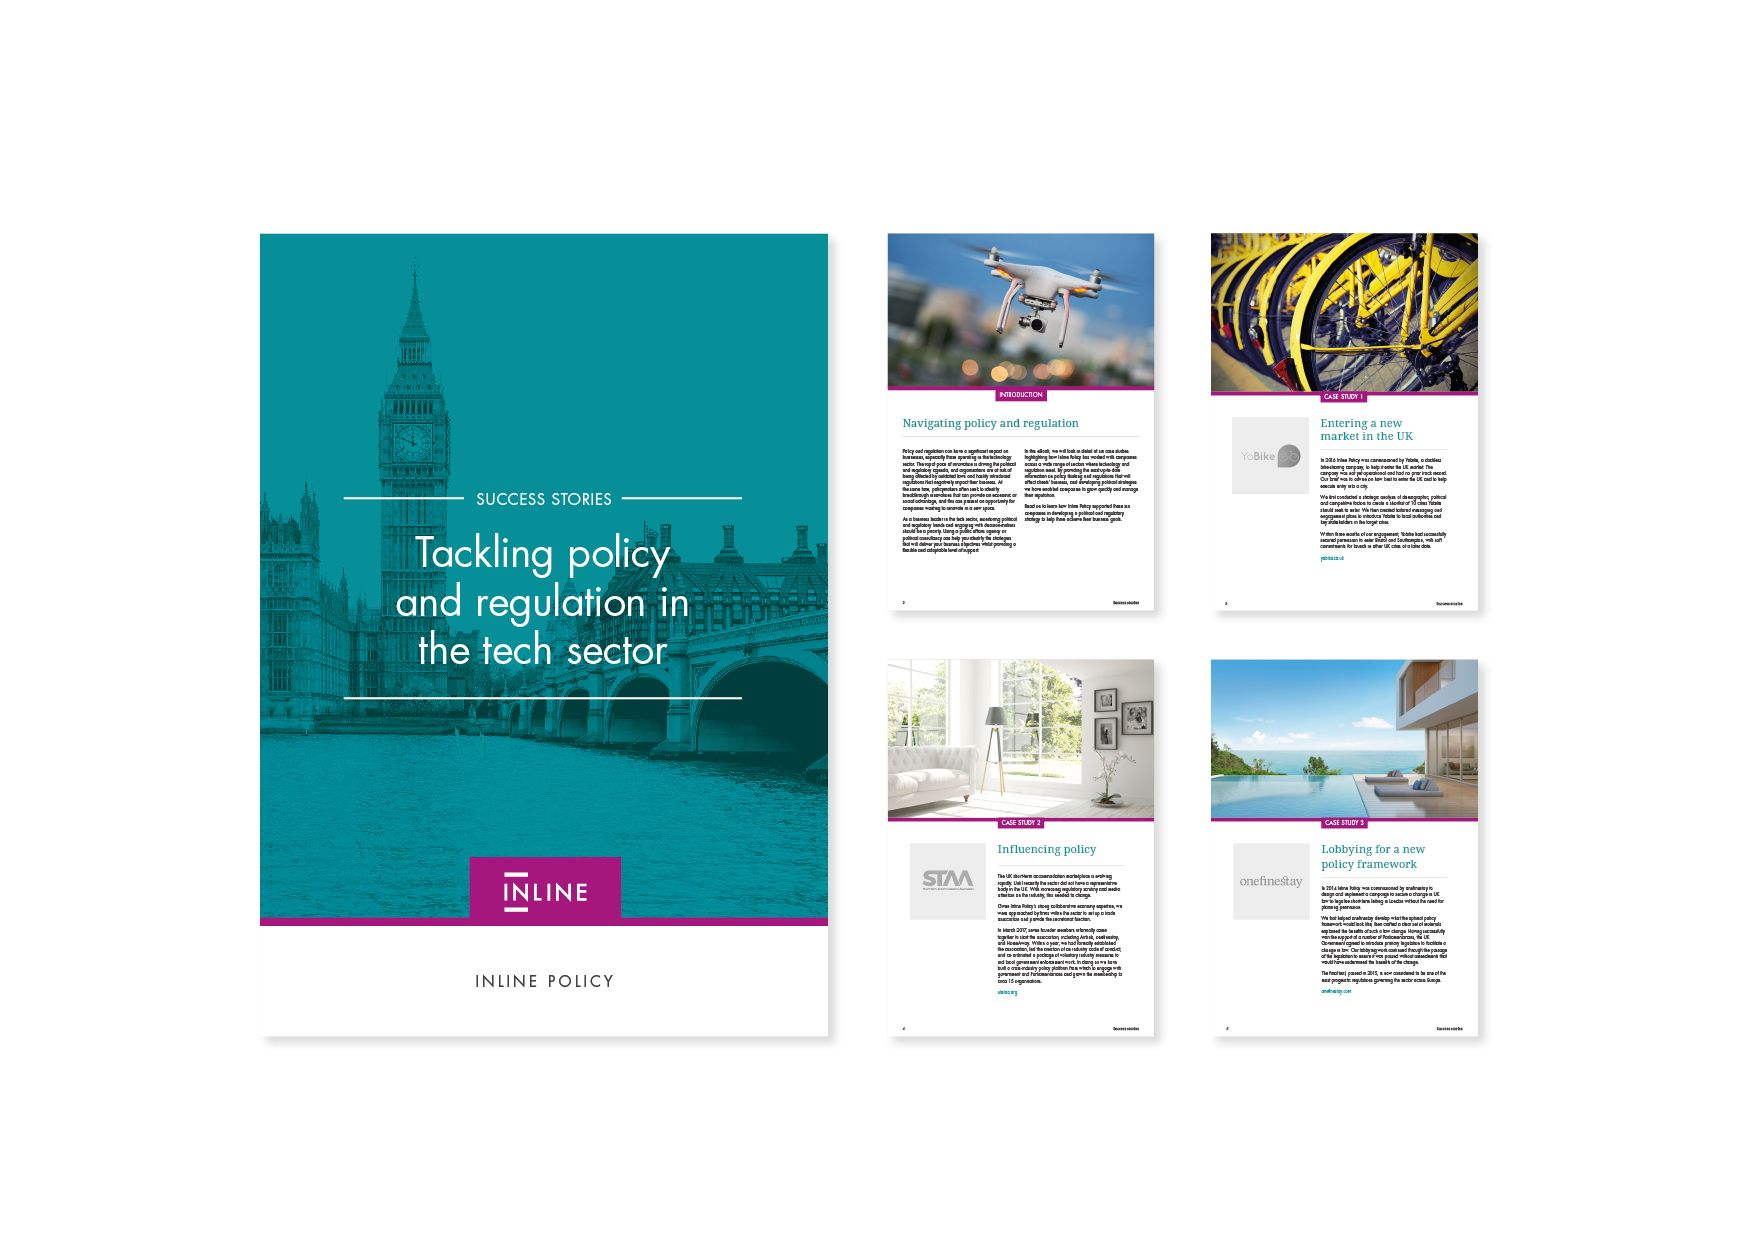 inline-web-print-digital-ebooks-equinet-media8